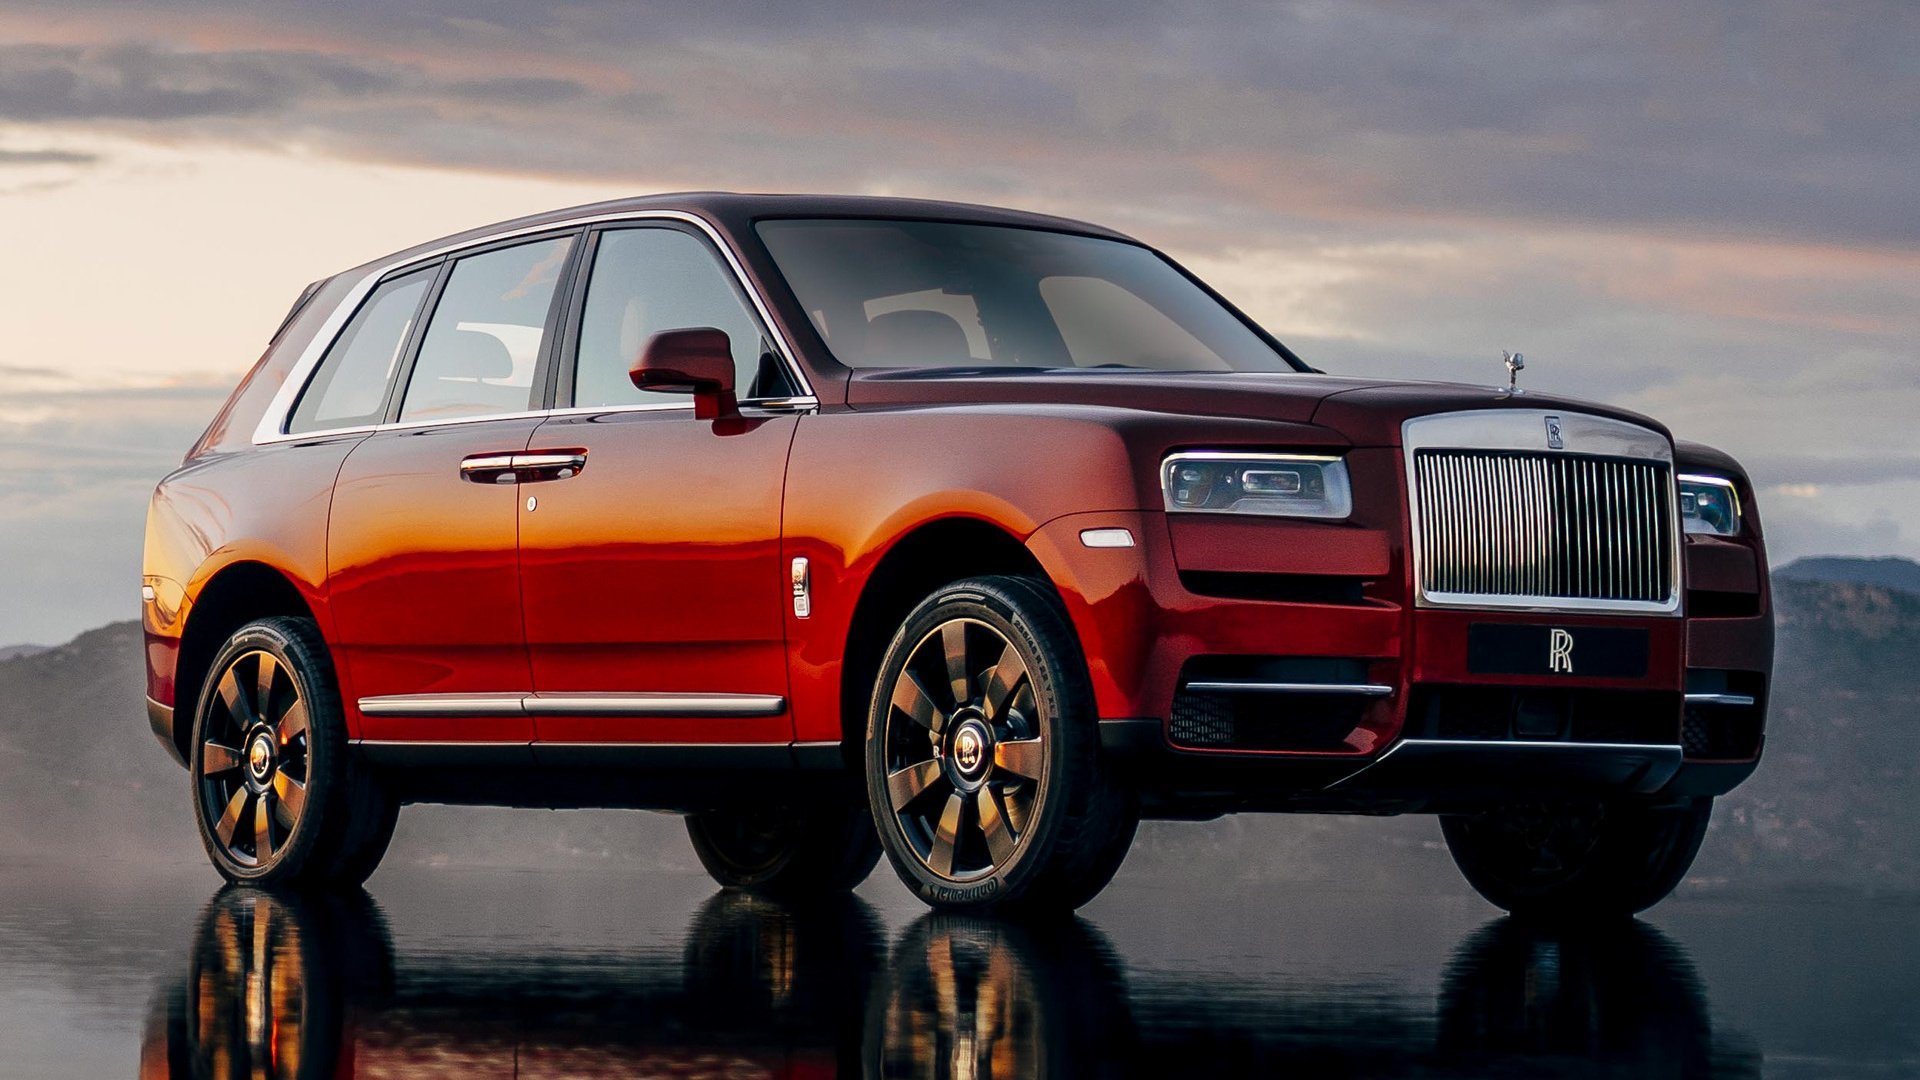 21 Rolls Royce Cullinan Hd Wallpapers Background Images Wallpaper Abyss